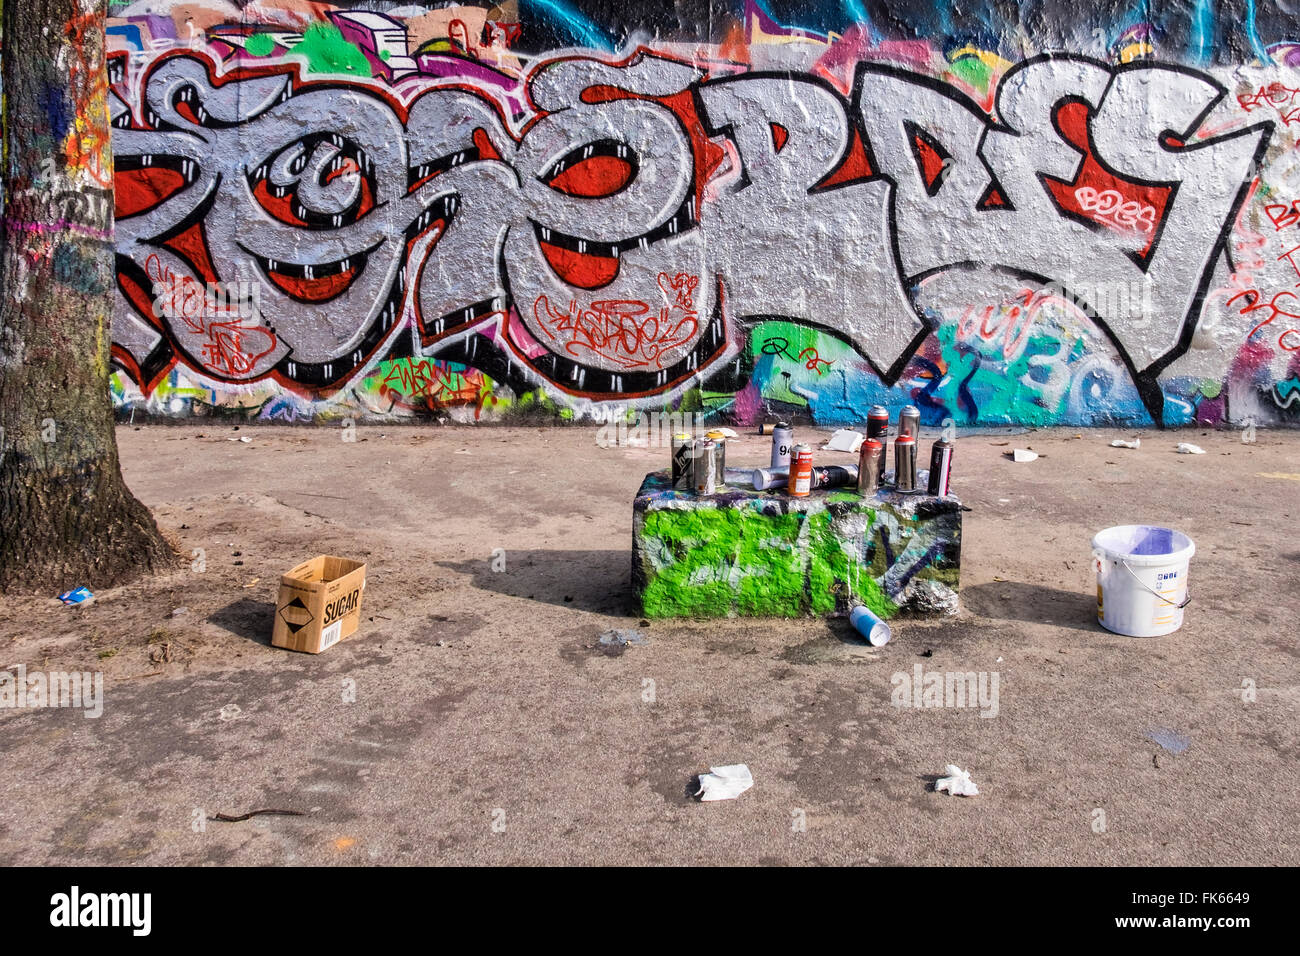 Graffiti on Berlin Wall and aerosol cans of spray paint left by street artists,Mauerpark, Berlin - Stock Image